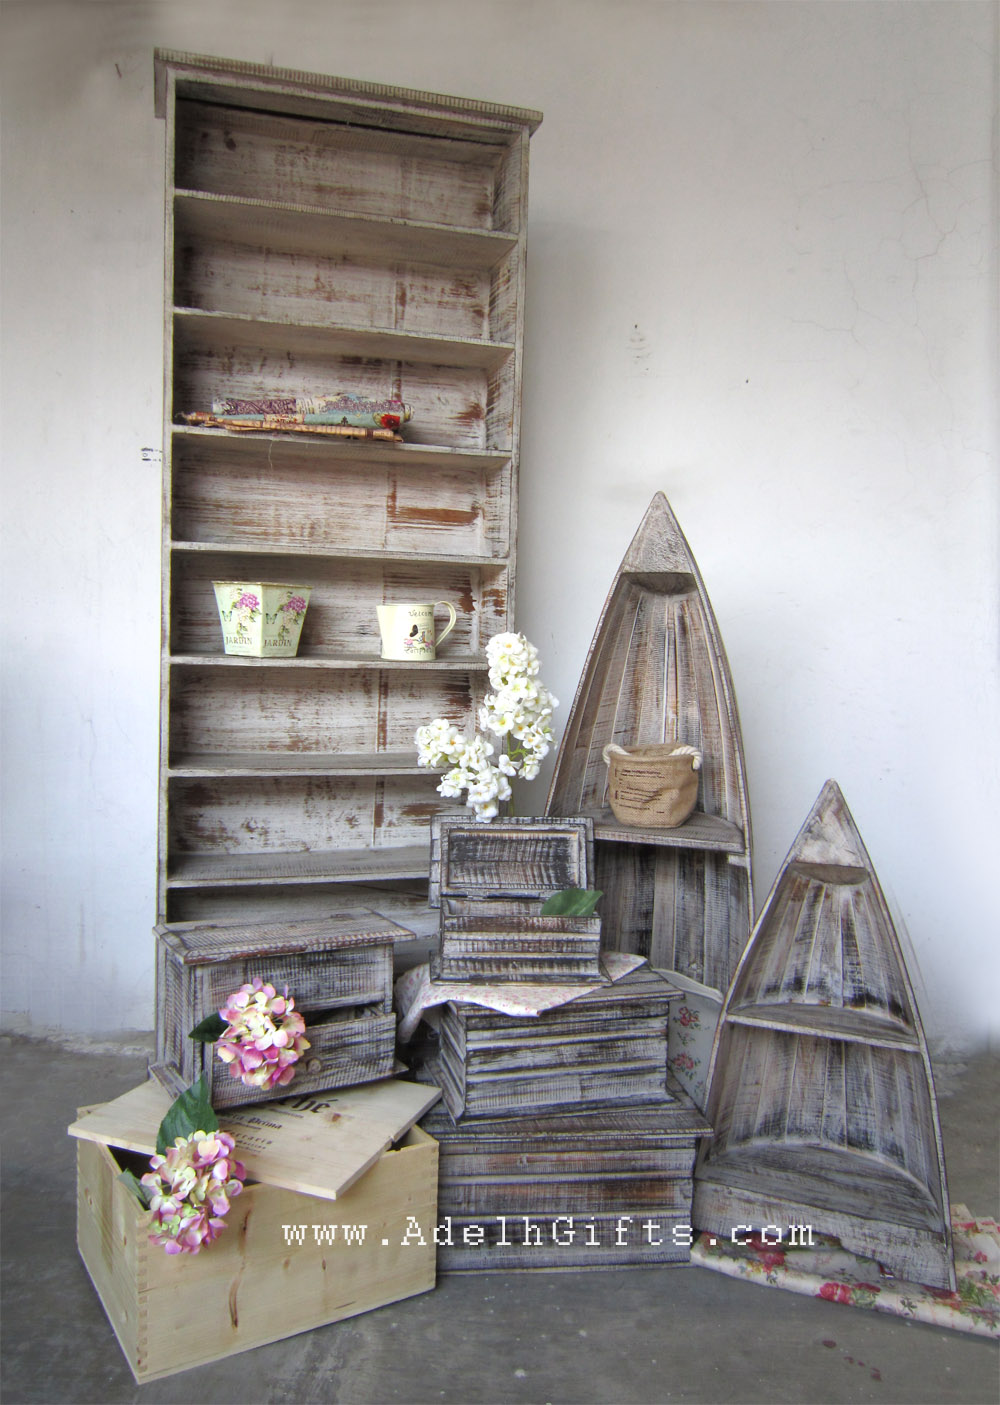 i upload my rustic style wood collections